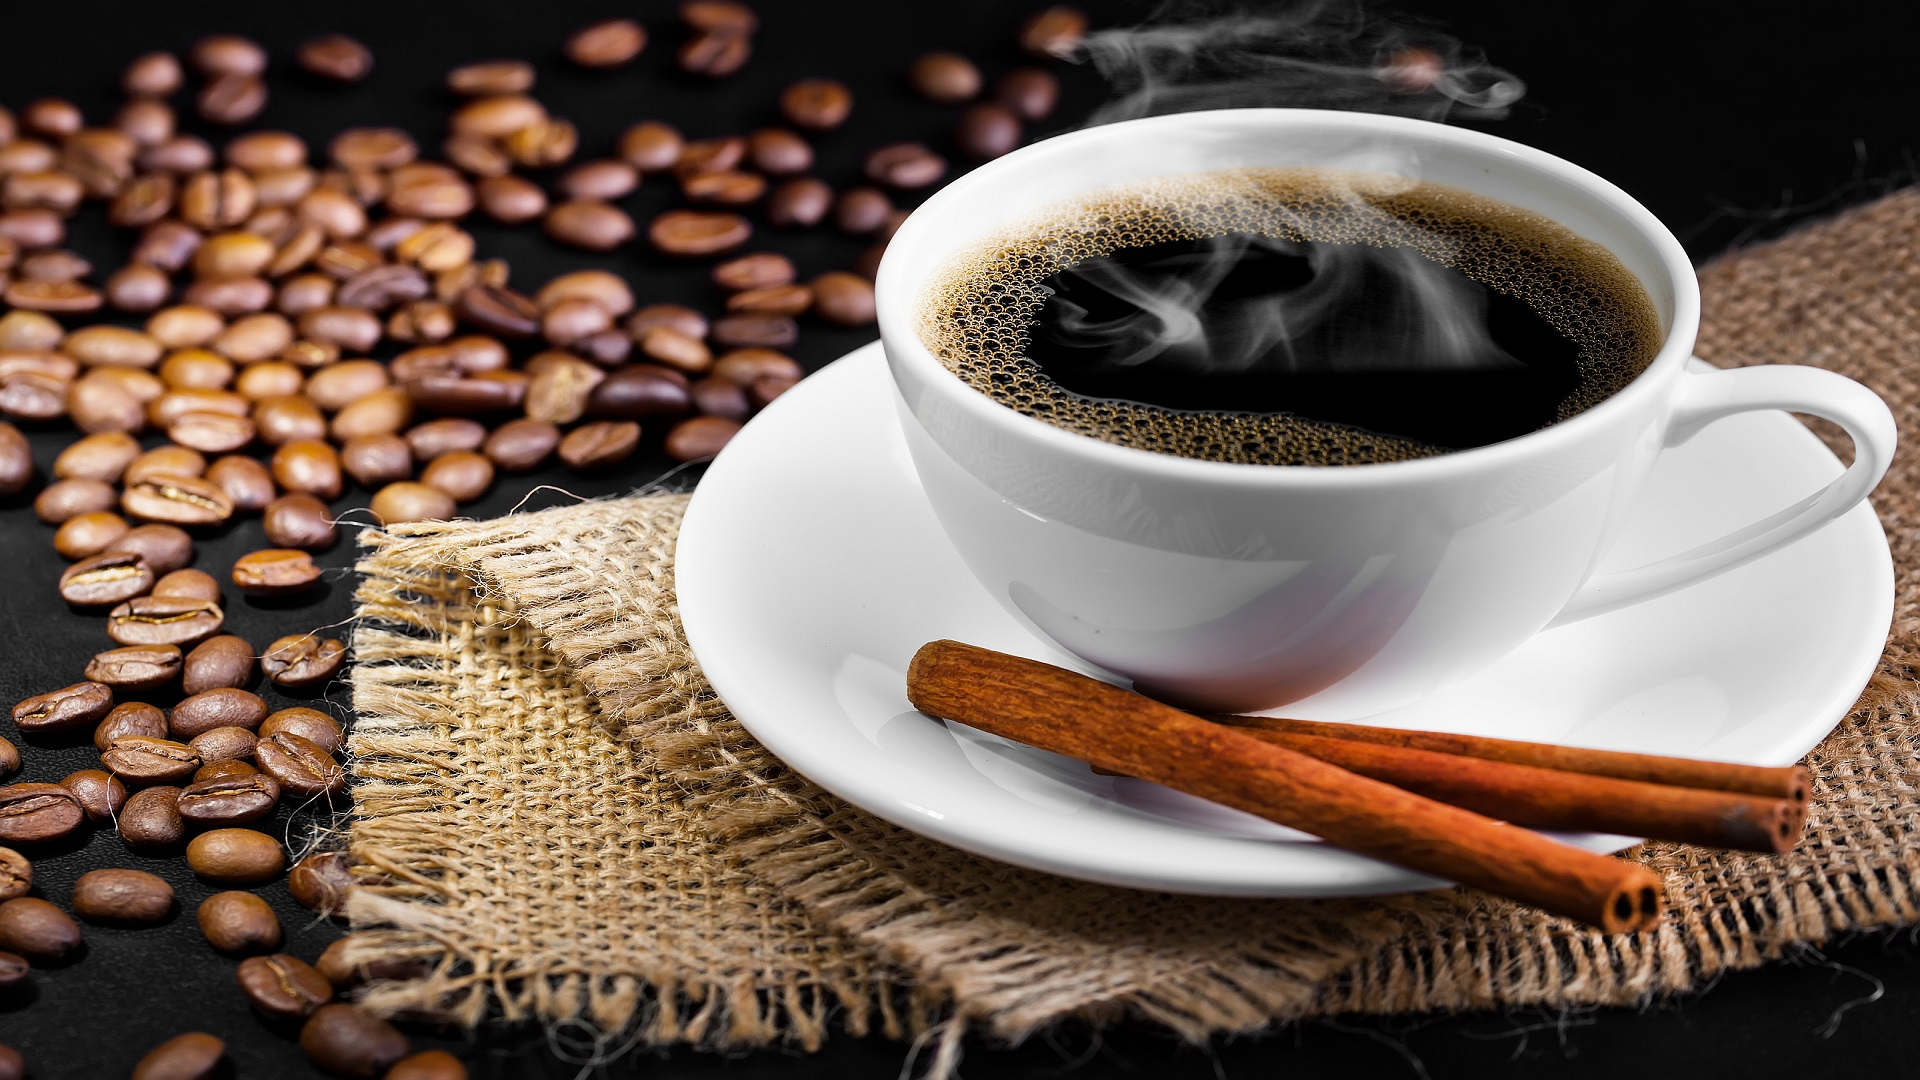 Indonesia and Vietnam are the world's biggest exporter of coffee behind Brazil.